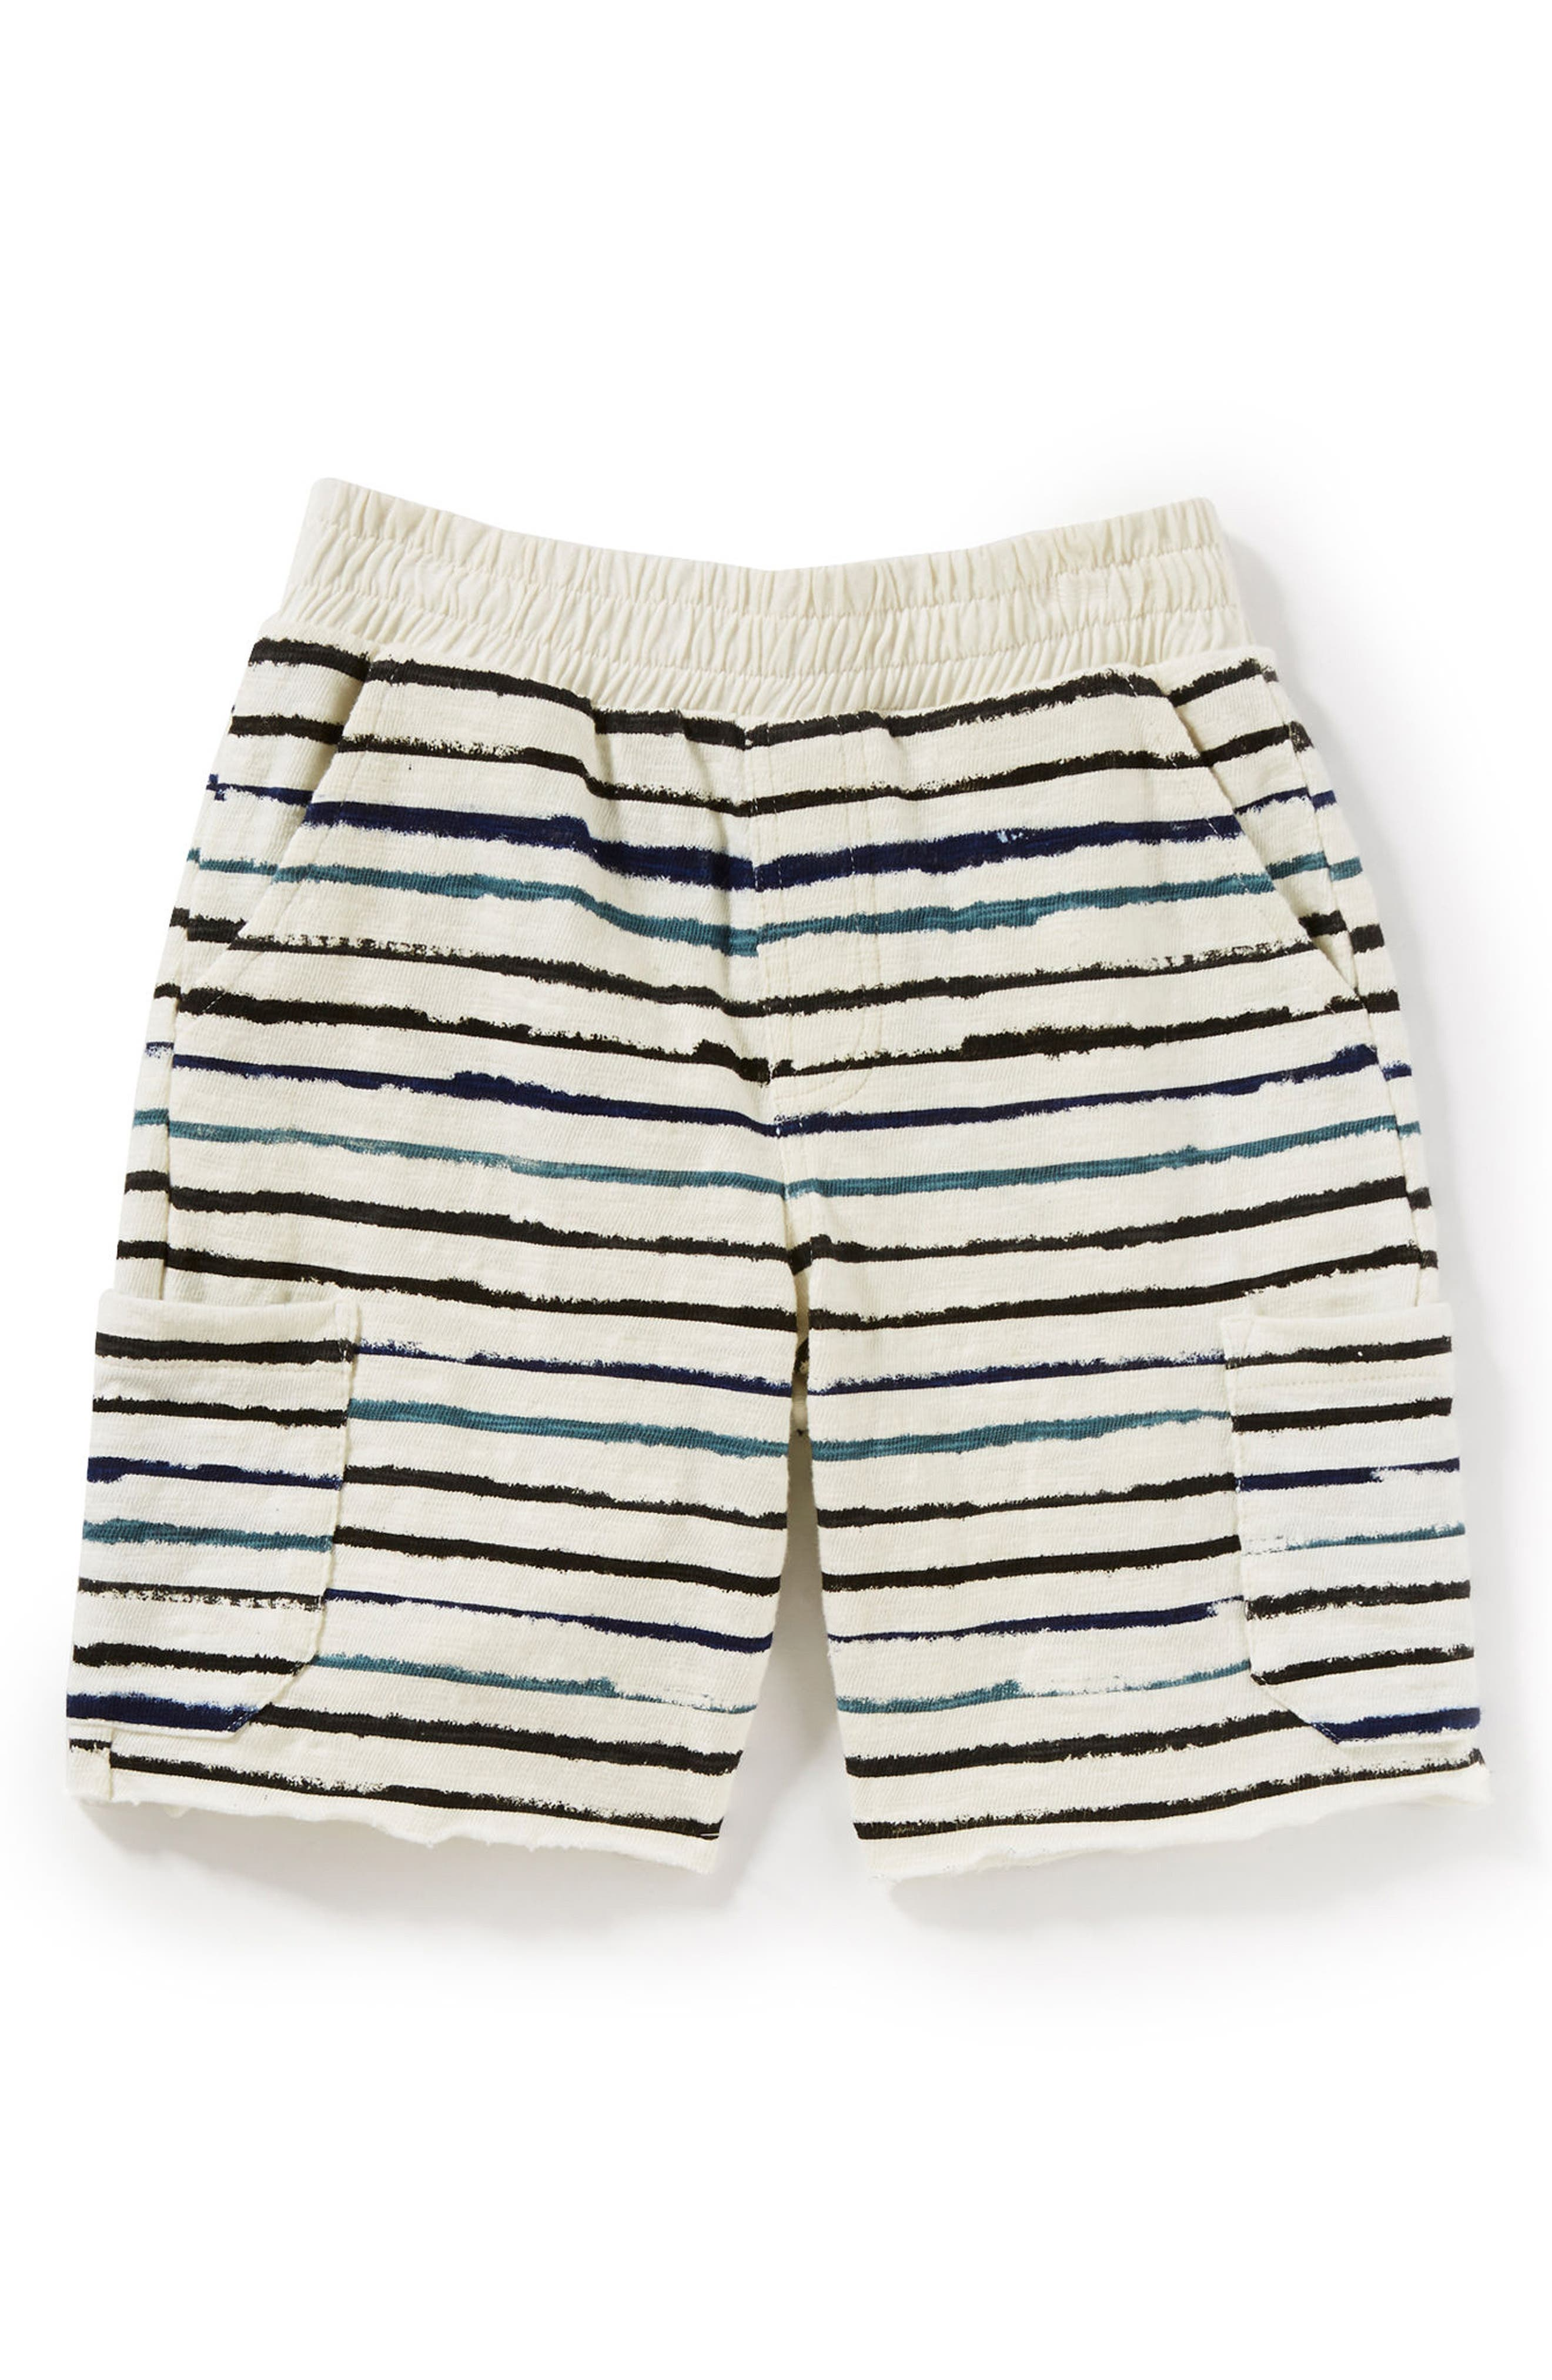 Main Image - Peek Asher Stripe Shorts (Toddler Boys, Little Boys & Big Boys)